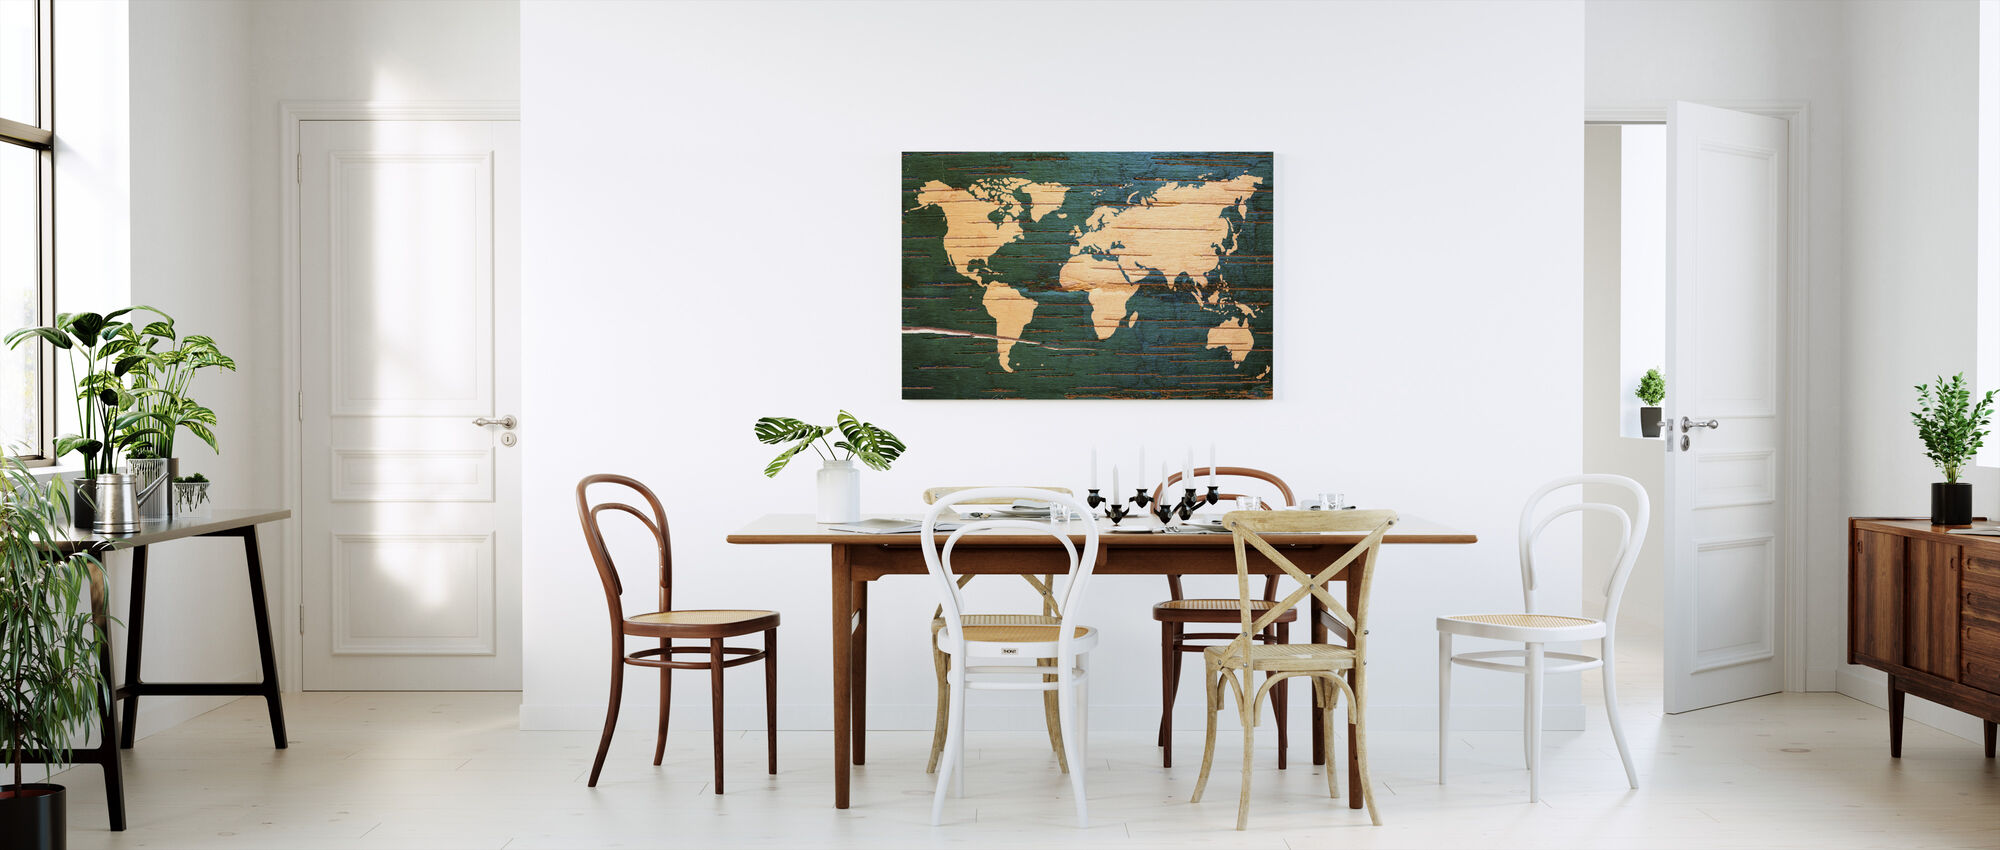 World Map on Wooden Wall - Canvas print - Kitchen